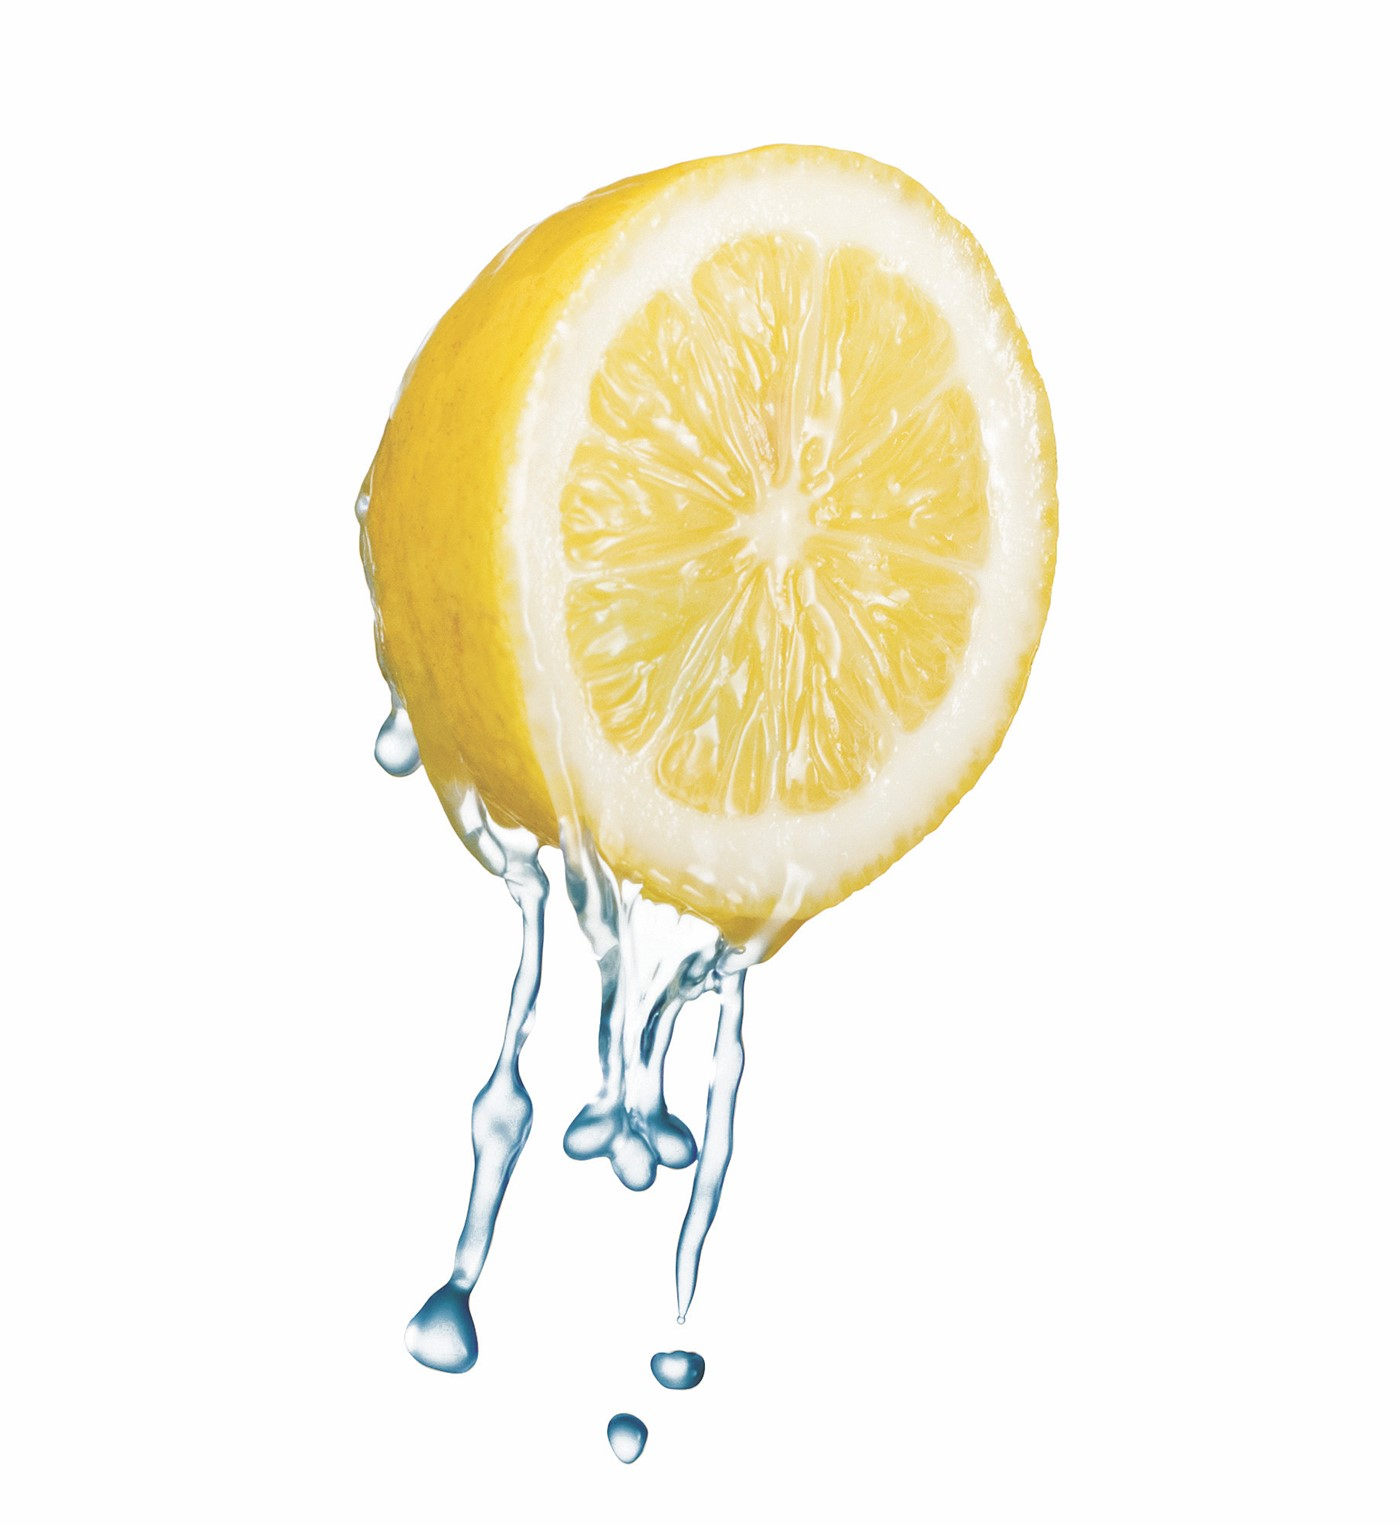 Lemon Slice Dripping with Water